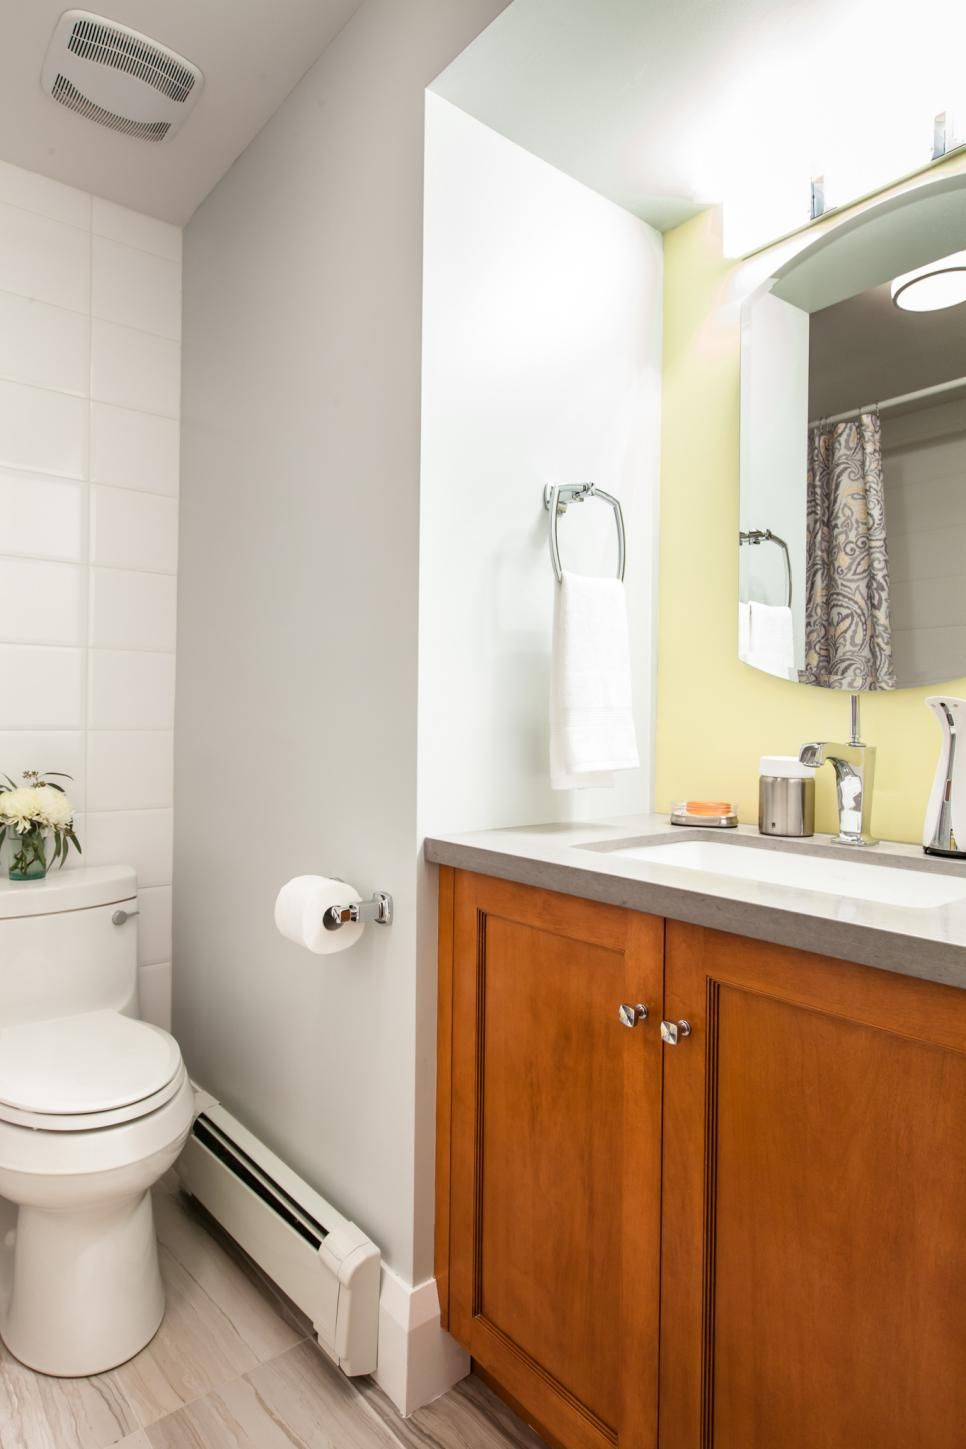 Before And After 30 Incredible Small Bathroom Makeovers Small Bathroom Remodel Small Bathroom Remodel Designs Budget Bathroom Remodel